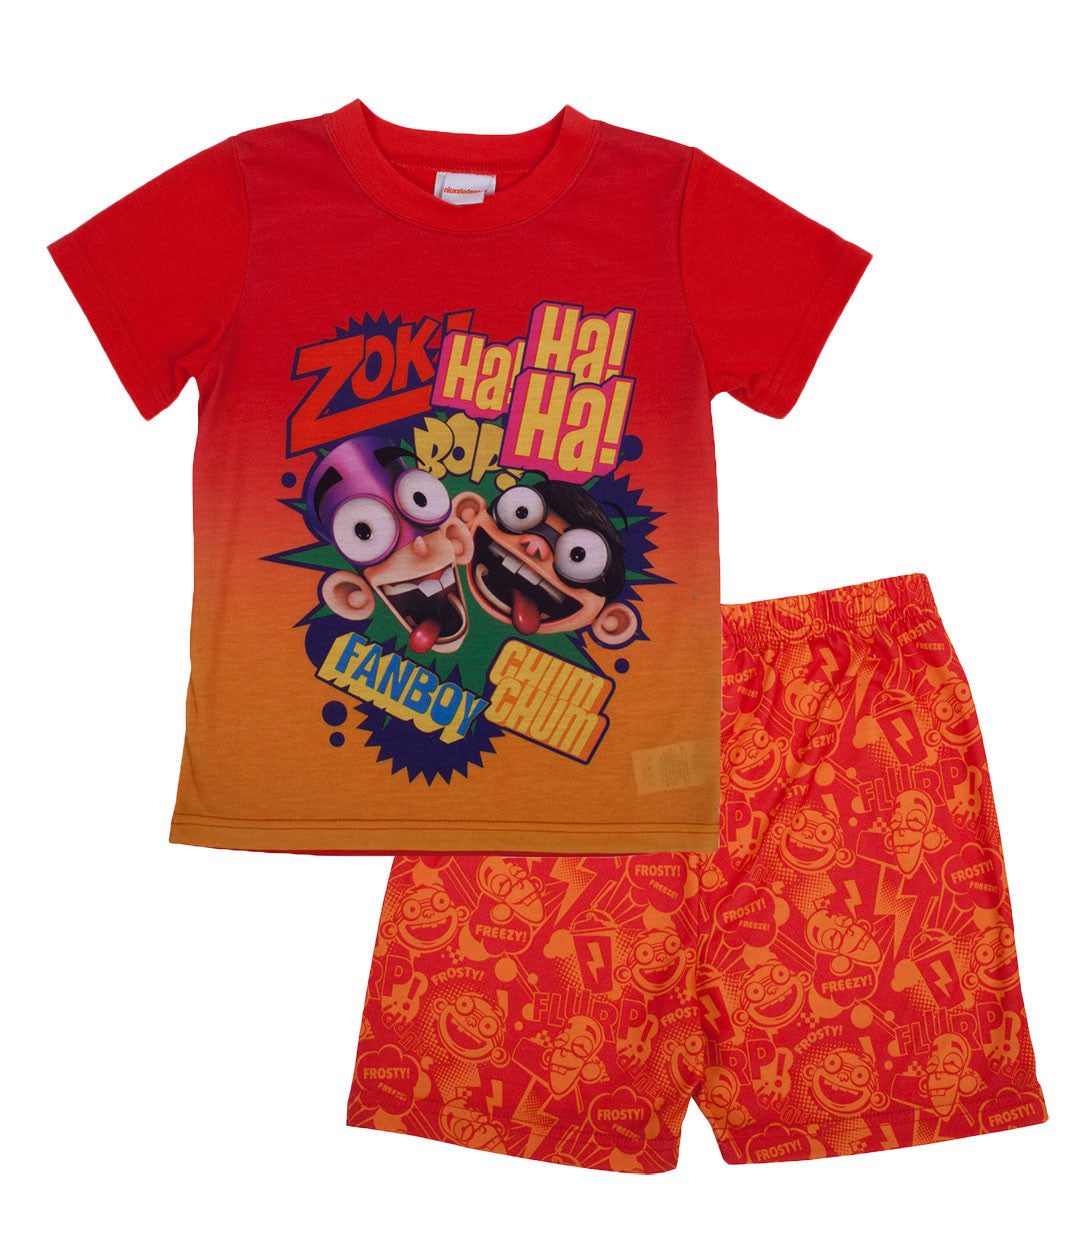 "Fanboy & Chum Chum ""Ha Ha"" 2pc Short Set - Boys - nickelodeonstore.co.uk"